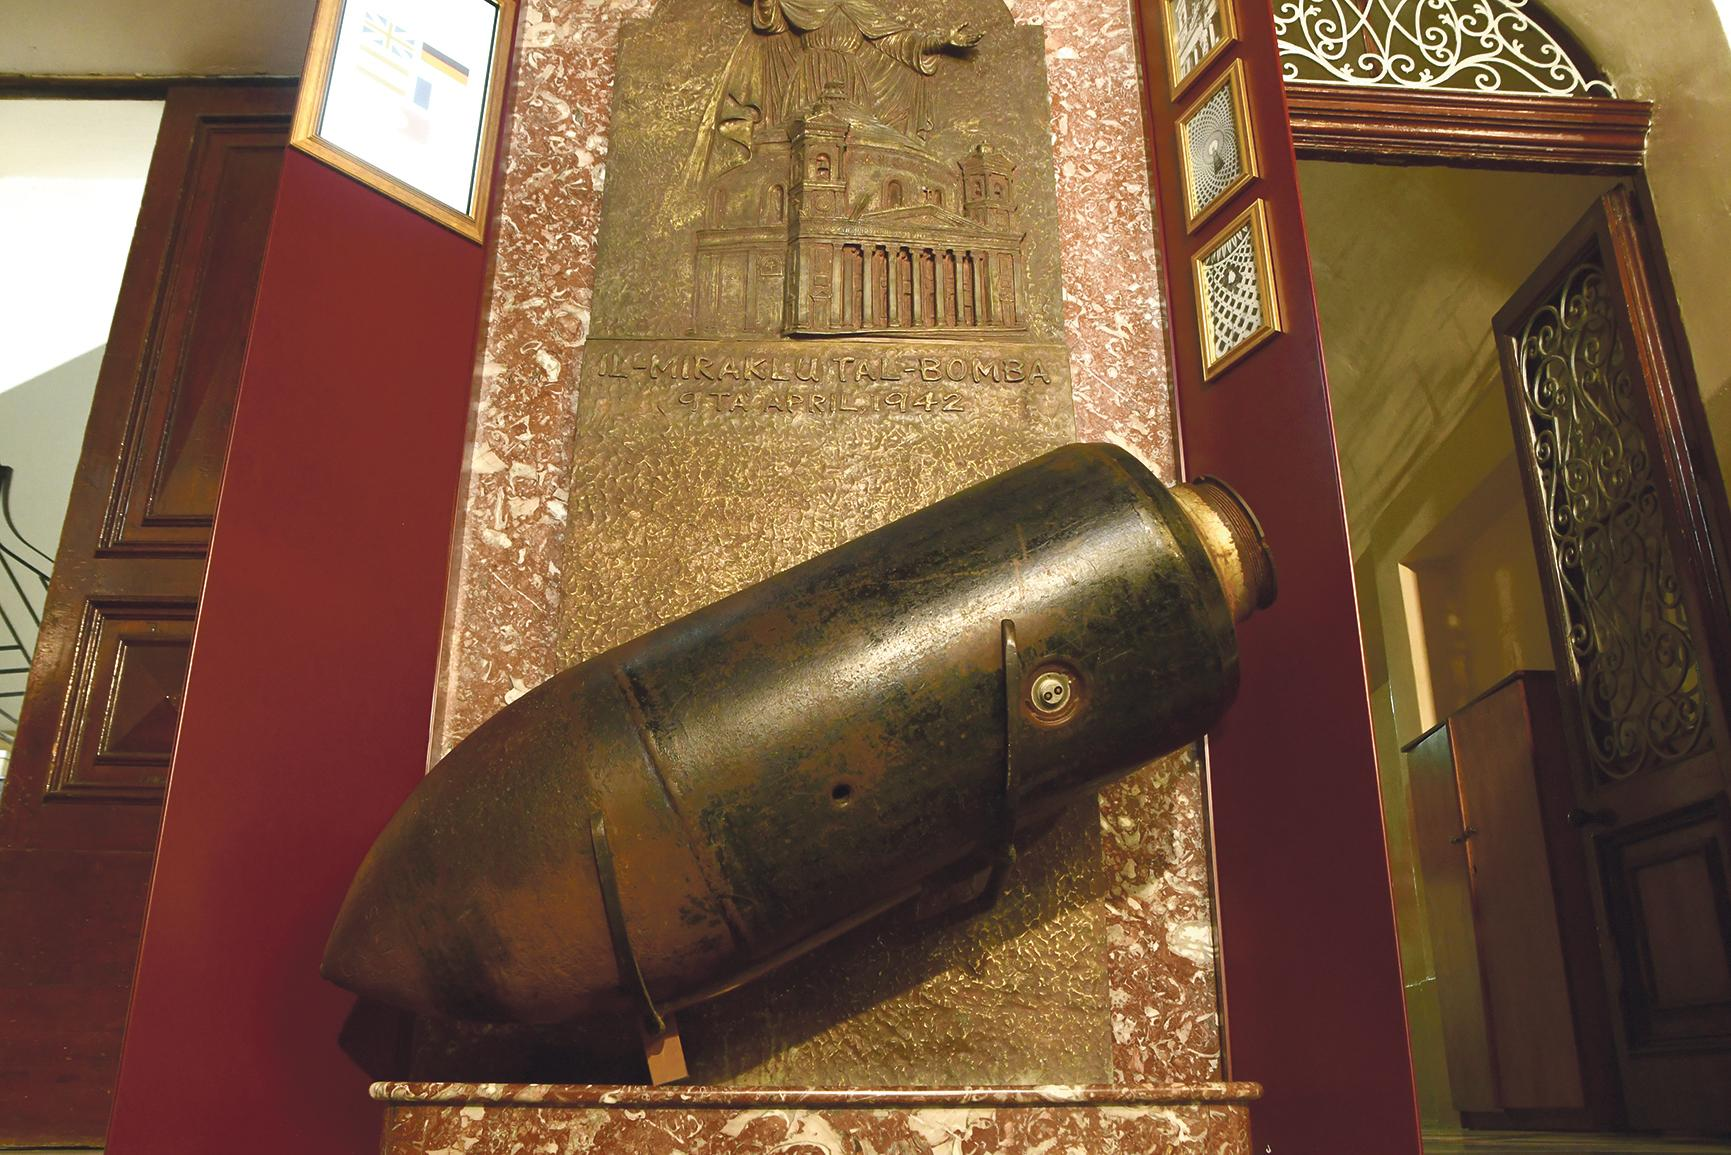 A replica of the bomb that hit the rotunda on April 9, 1942, without detonating, is found in the church's museum.